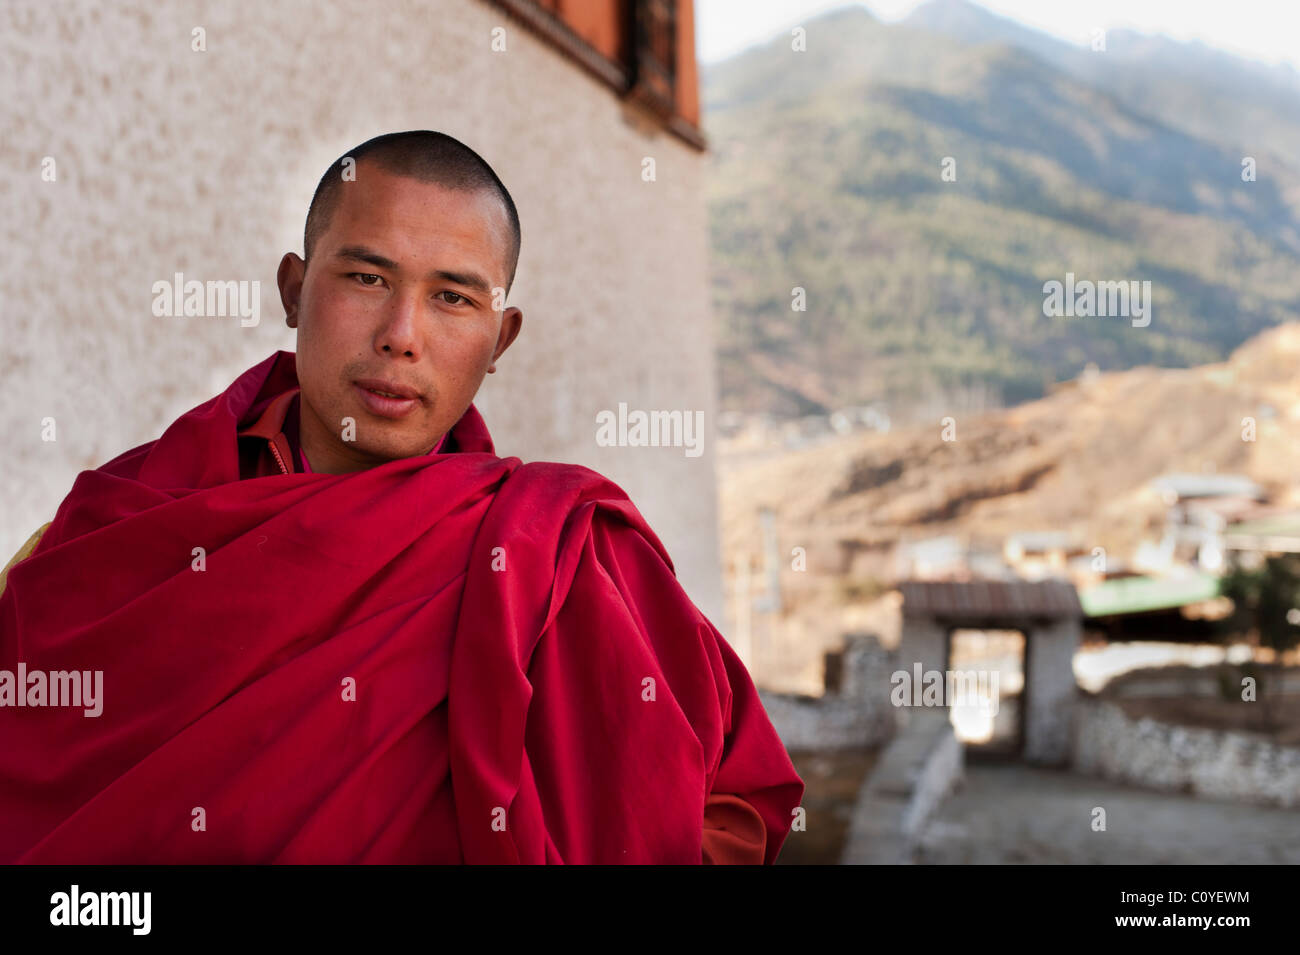 Young Buddhist monk standing outside the Paro Dzong with the Himalayas in the background - Stock Image